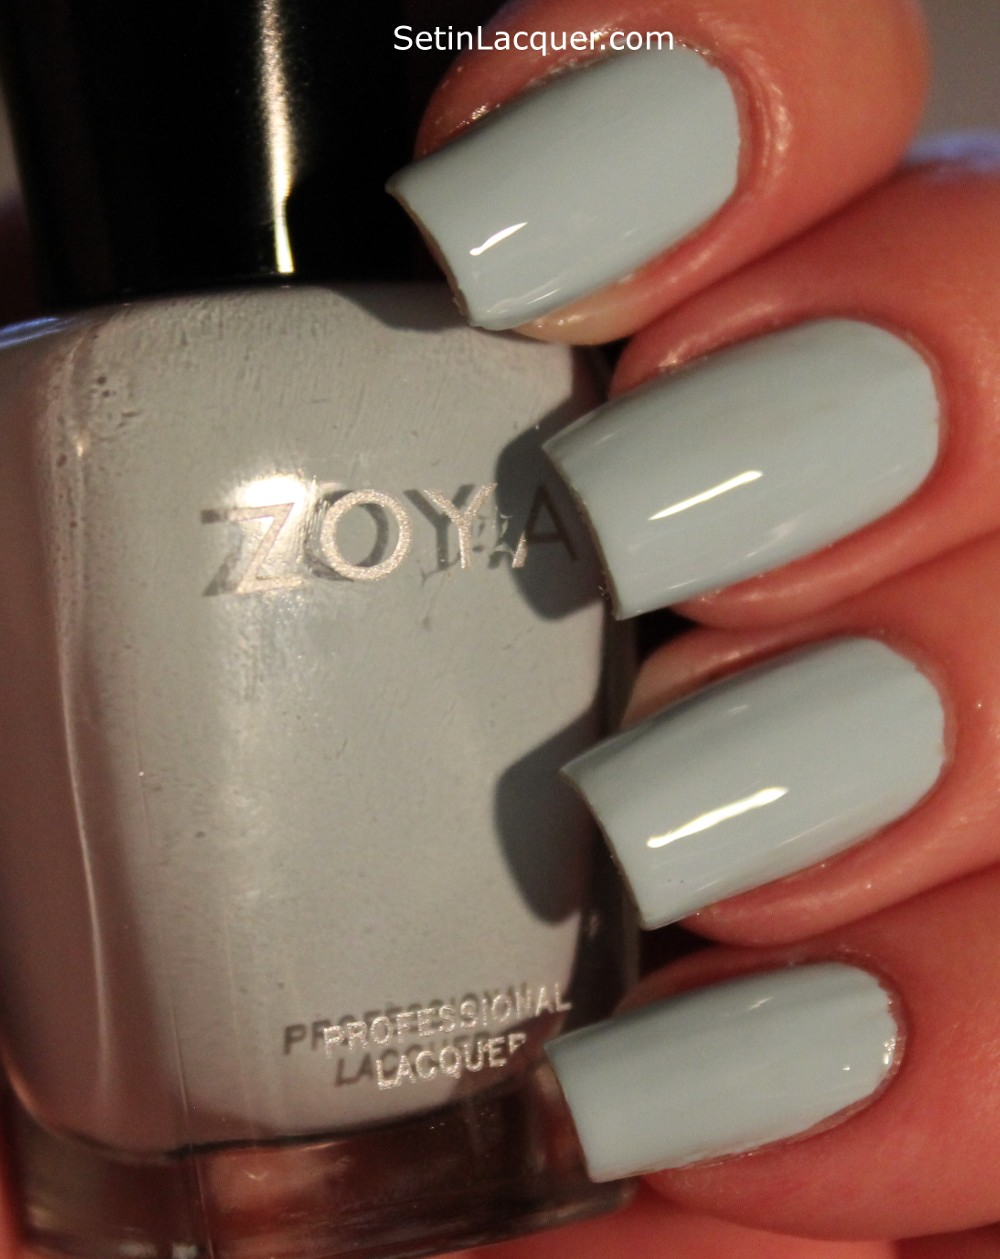 Zoya Lovely Collection swatches - Set in Lacquer